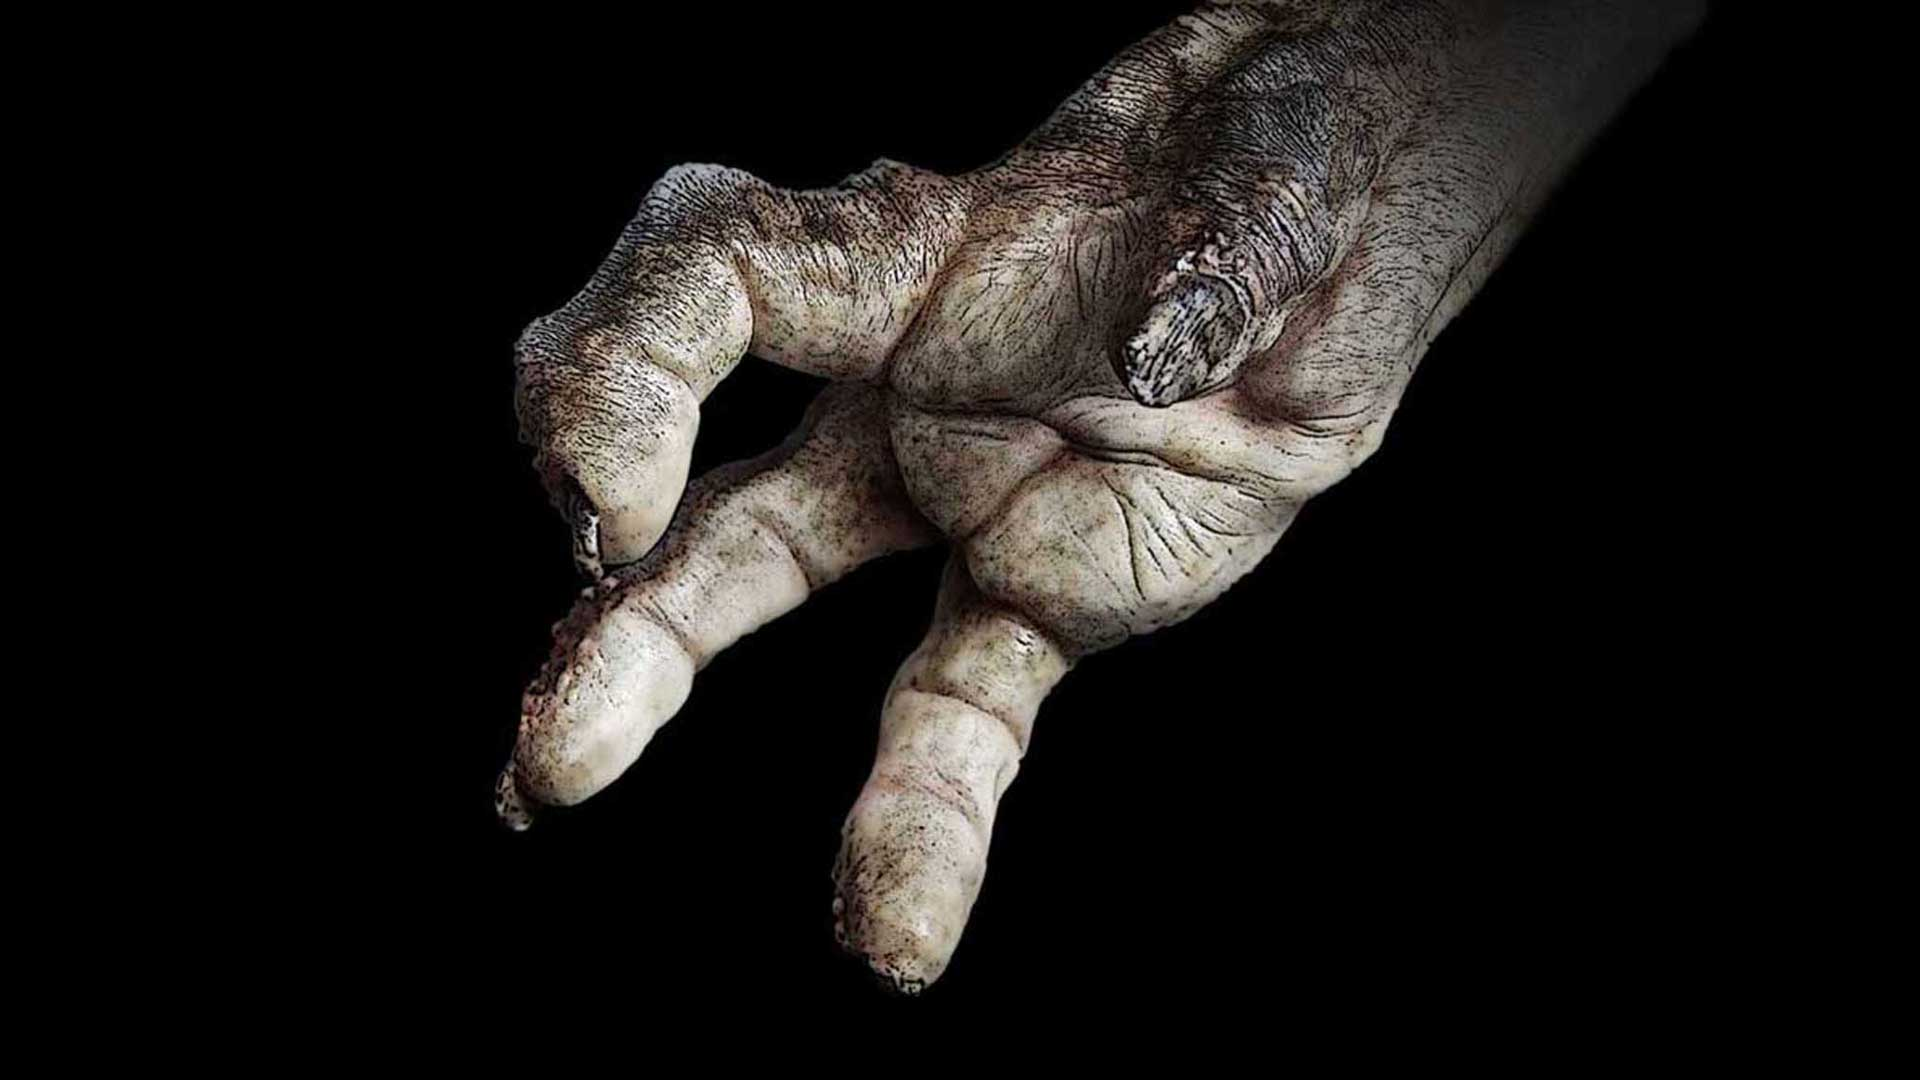 The hand of a biblical giant, Nephilim.